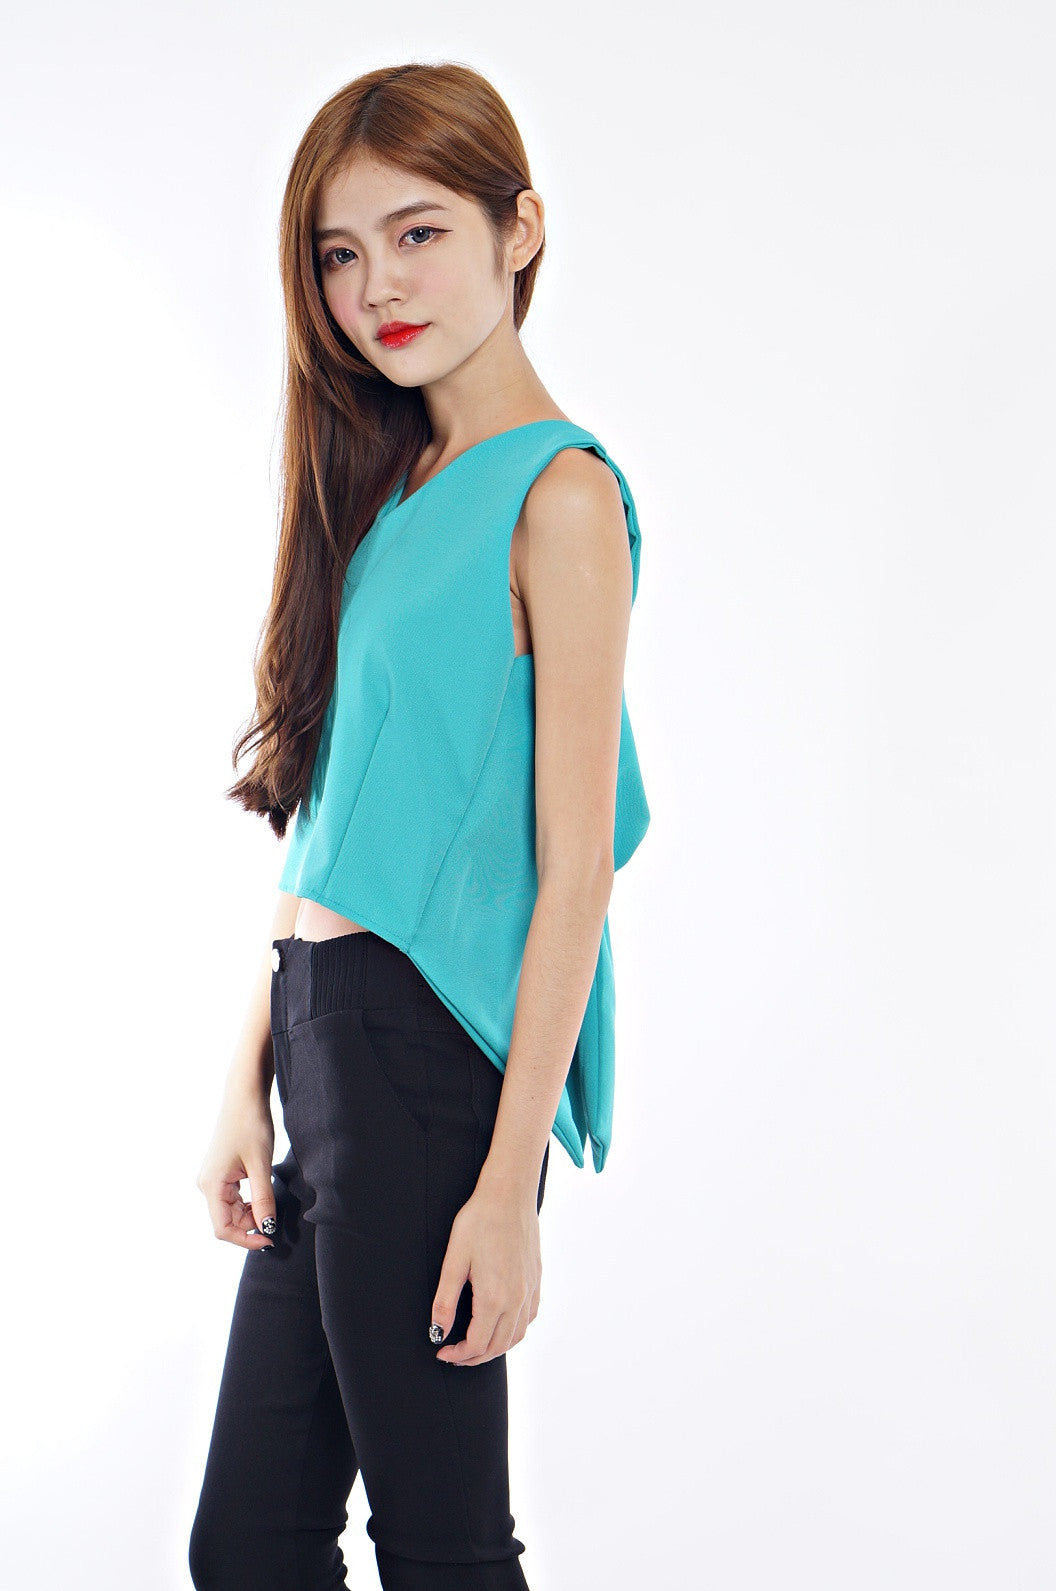 BOW WOW TOP IN TEAL - TOPAZETTE